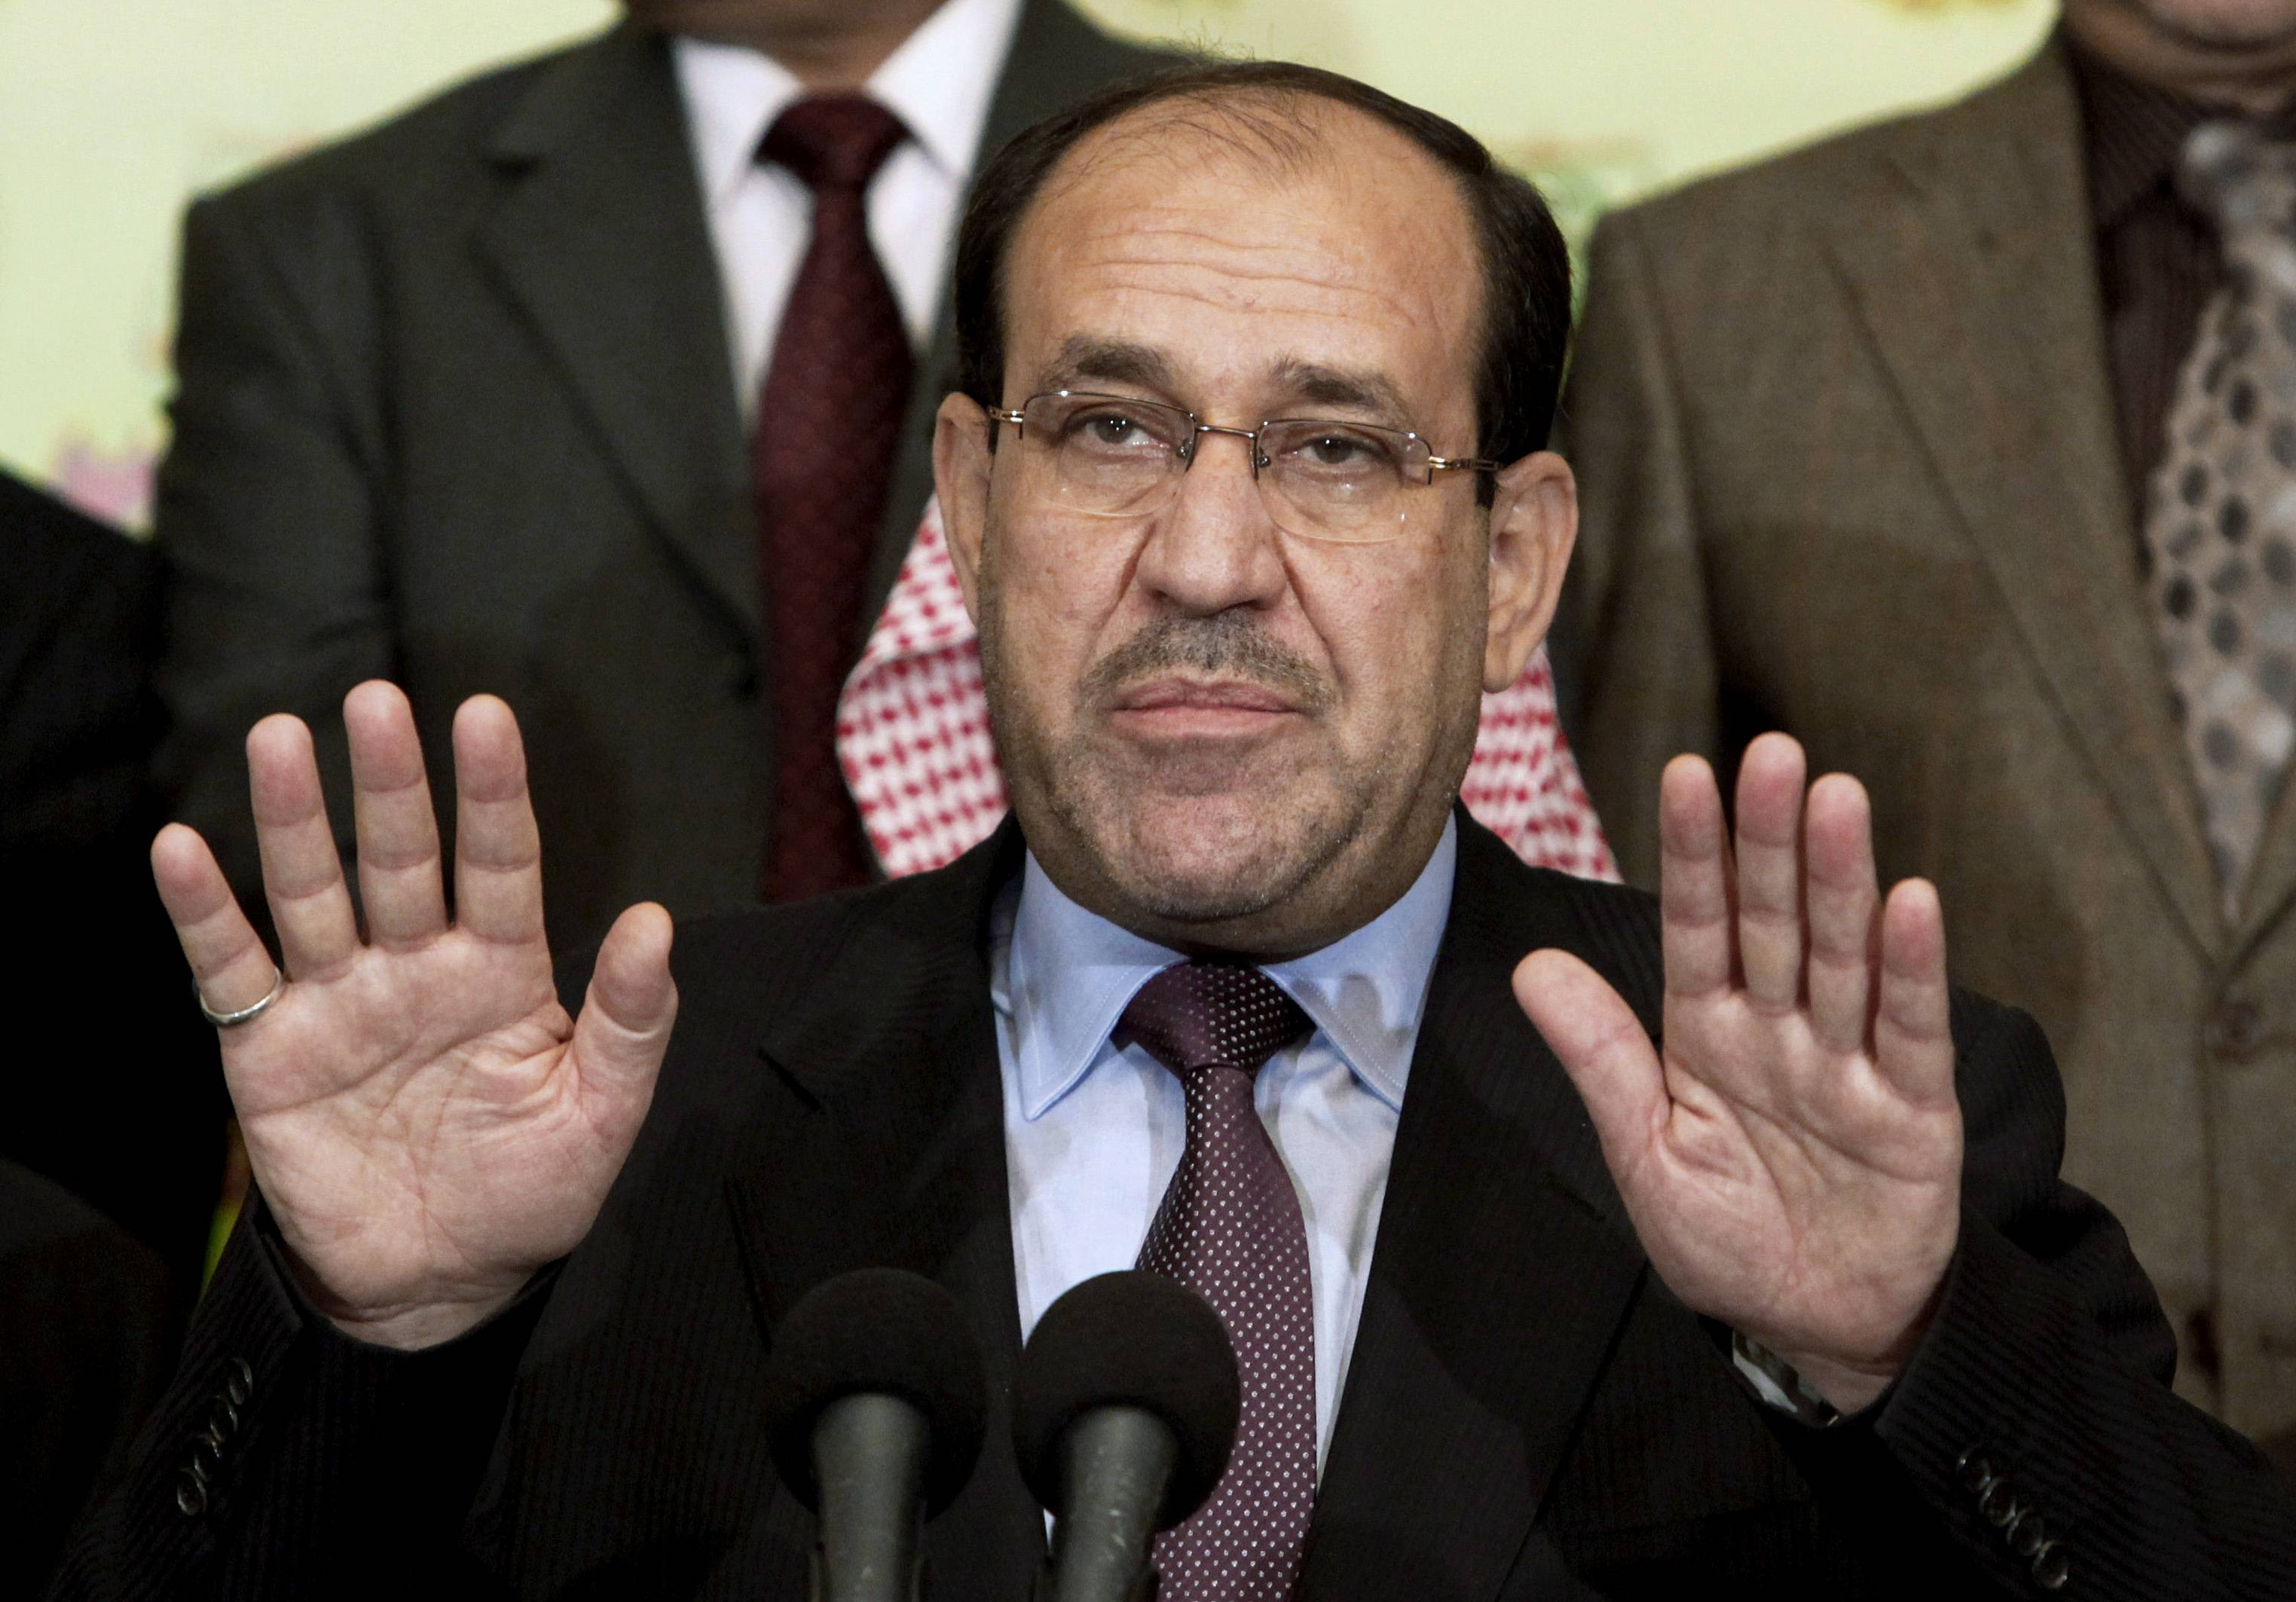 Iraqi Prime Minister Nouri al-Maliki has given up his post as prime minister to Haider al-Abadi, state television reported Thursday, Aug. 14, 2014 — a move that could end a political deadlock that plunged Baghdad into uncertainty as the country fights a Sunni militant insurgency.